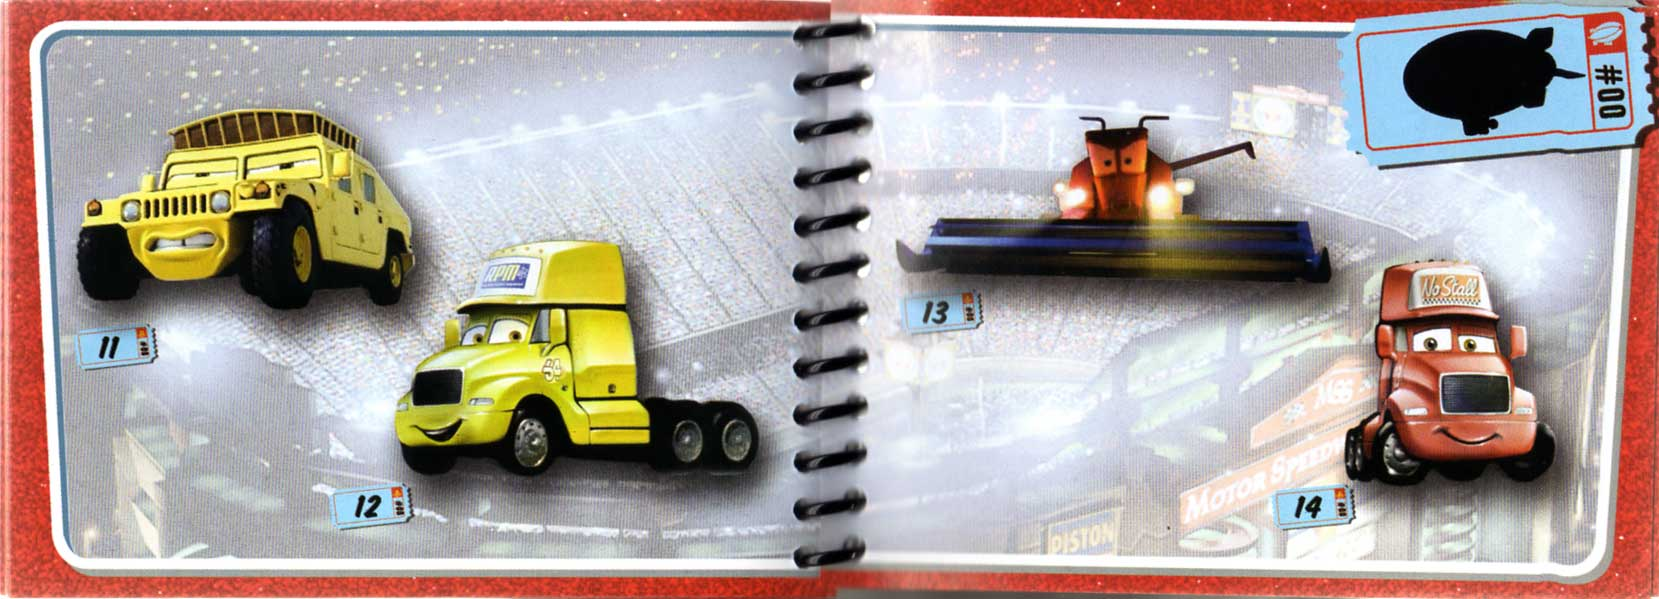 Catalogue Race O Rama page 78 - 79